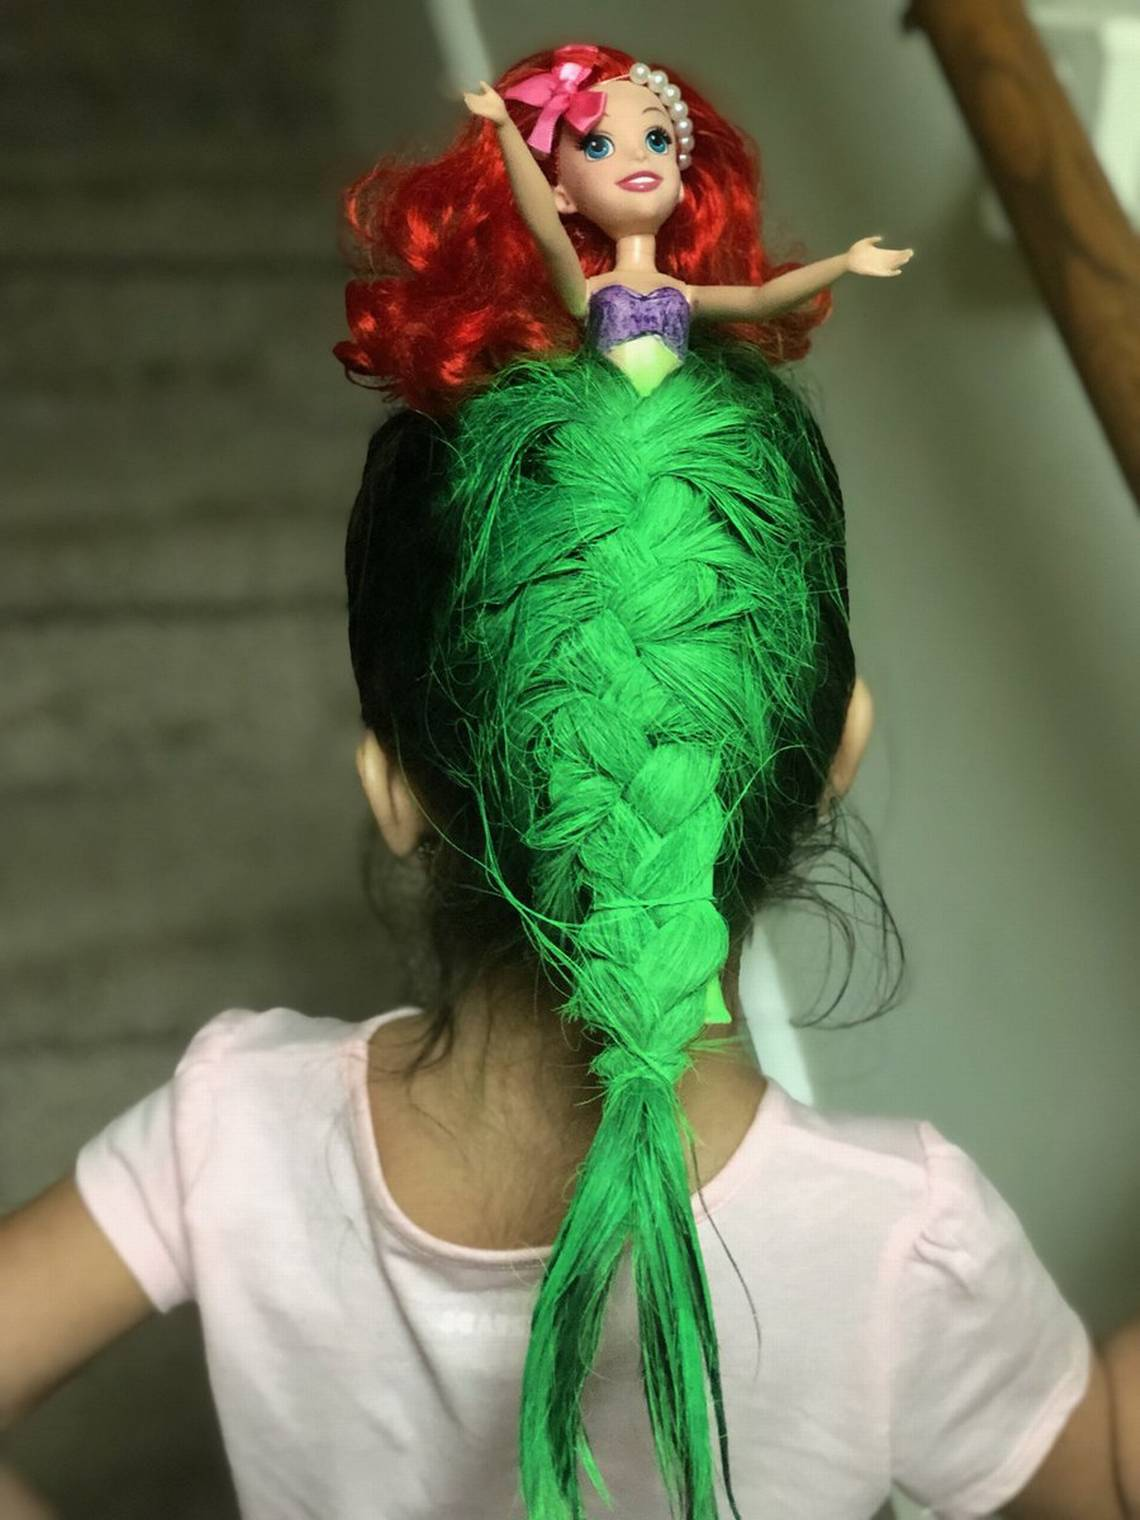 15+ Crazy hair day ideas for your lovable daughter